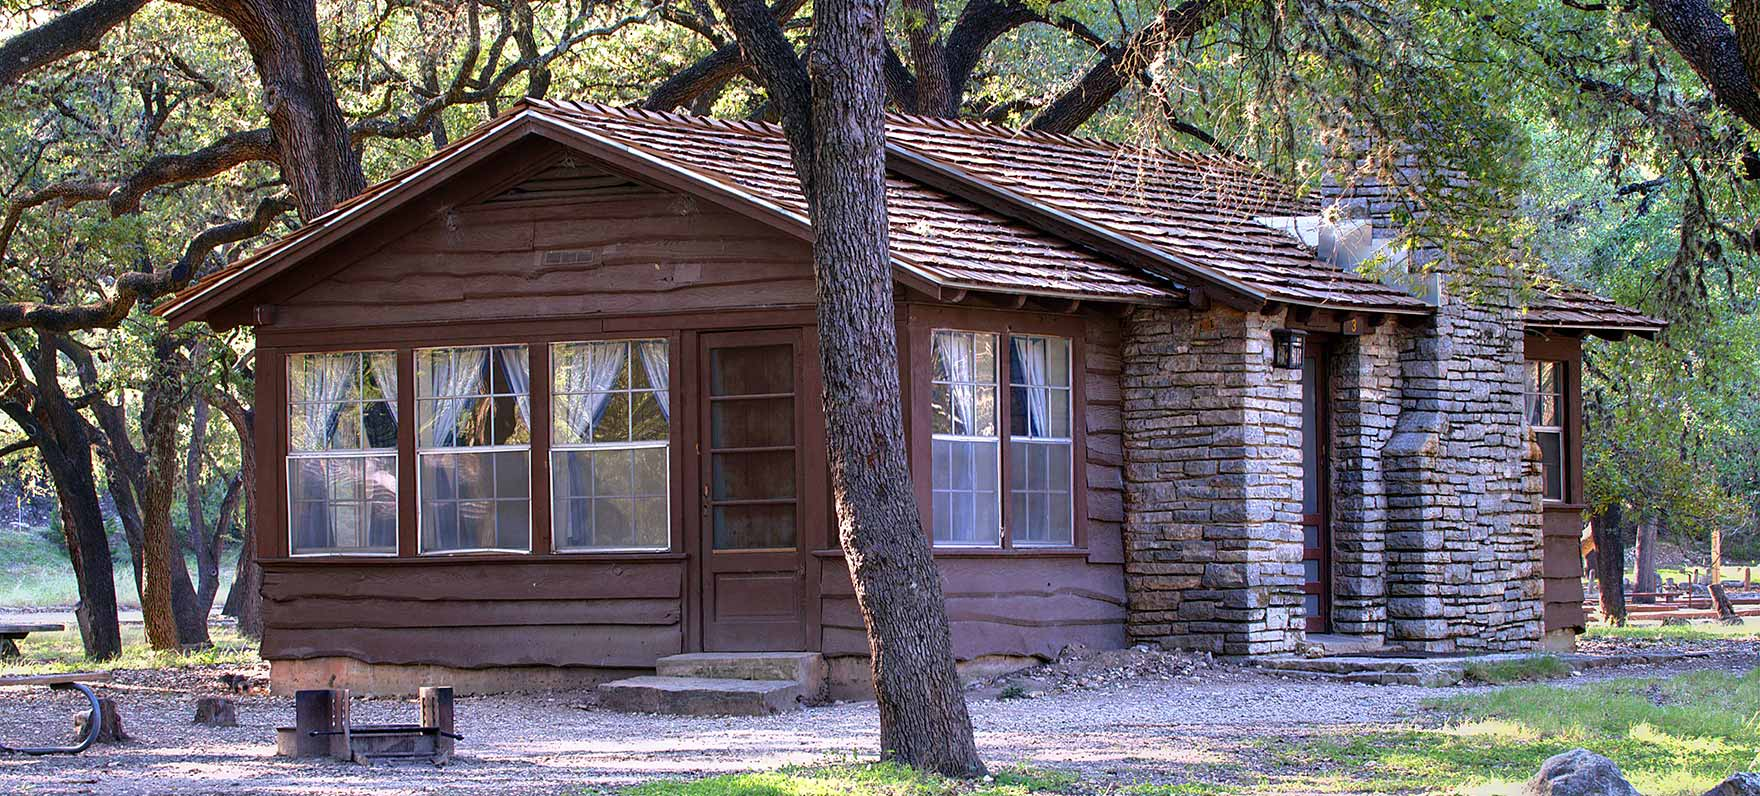 Garner state park texas parks wildlife department for Fishing cabins for rent in texas